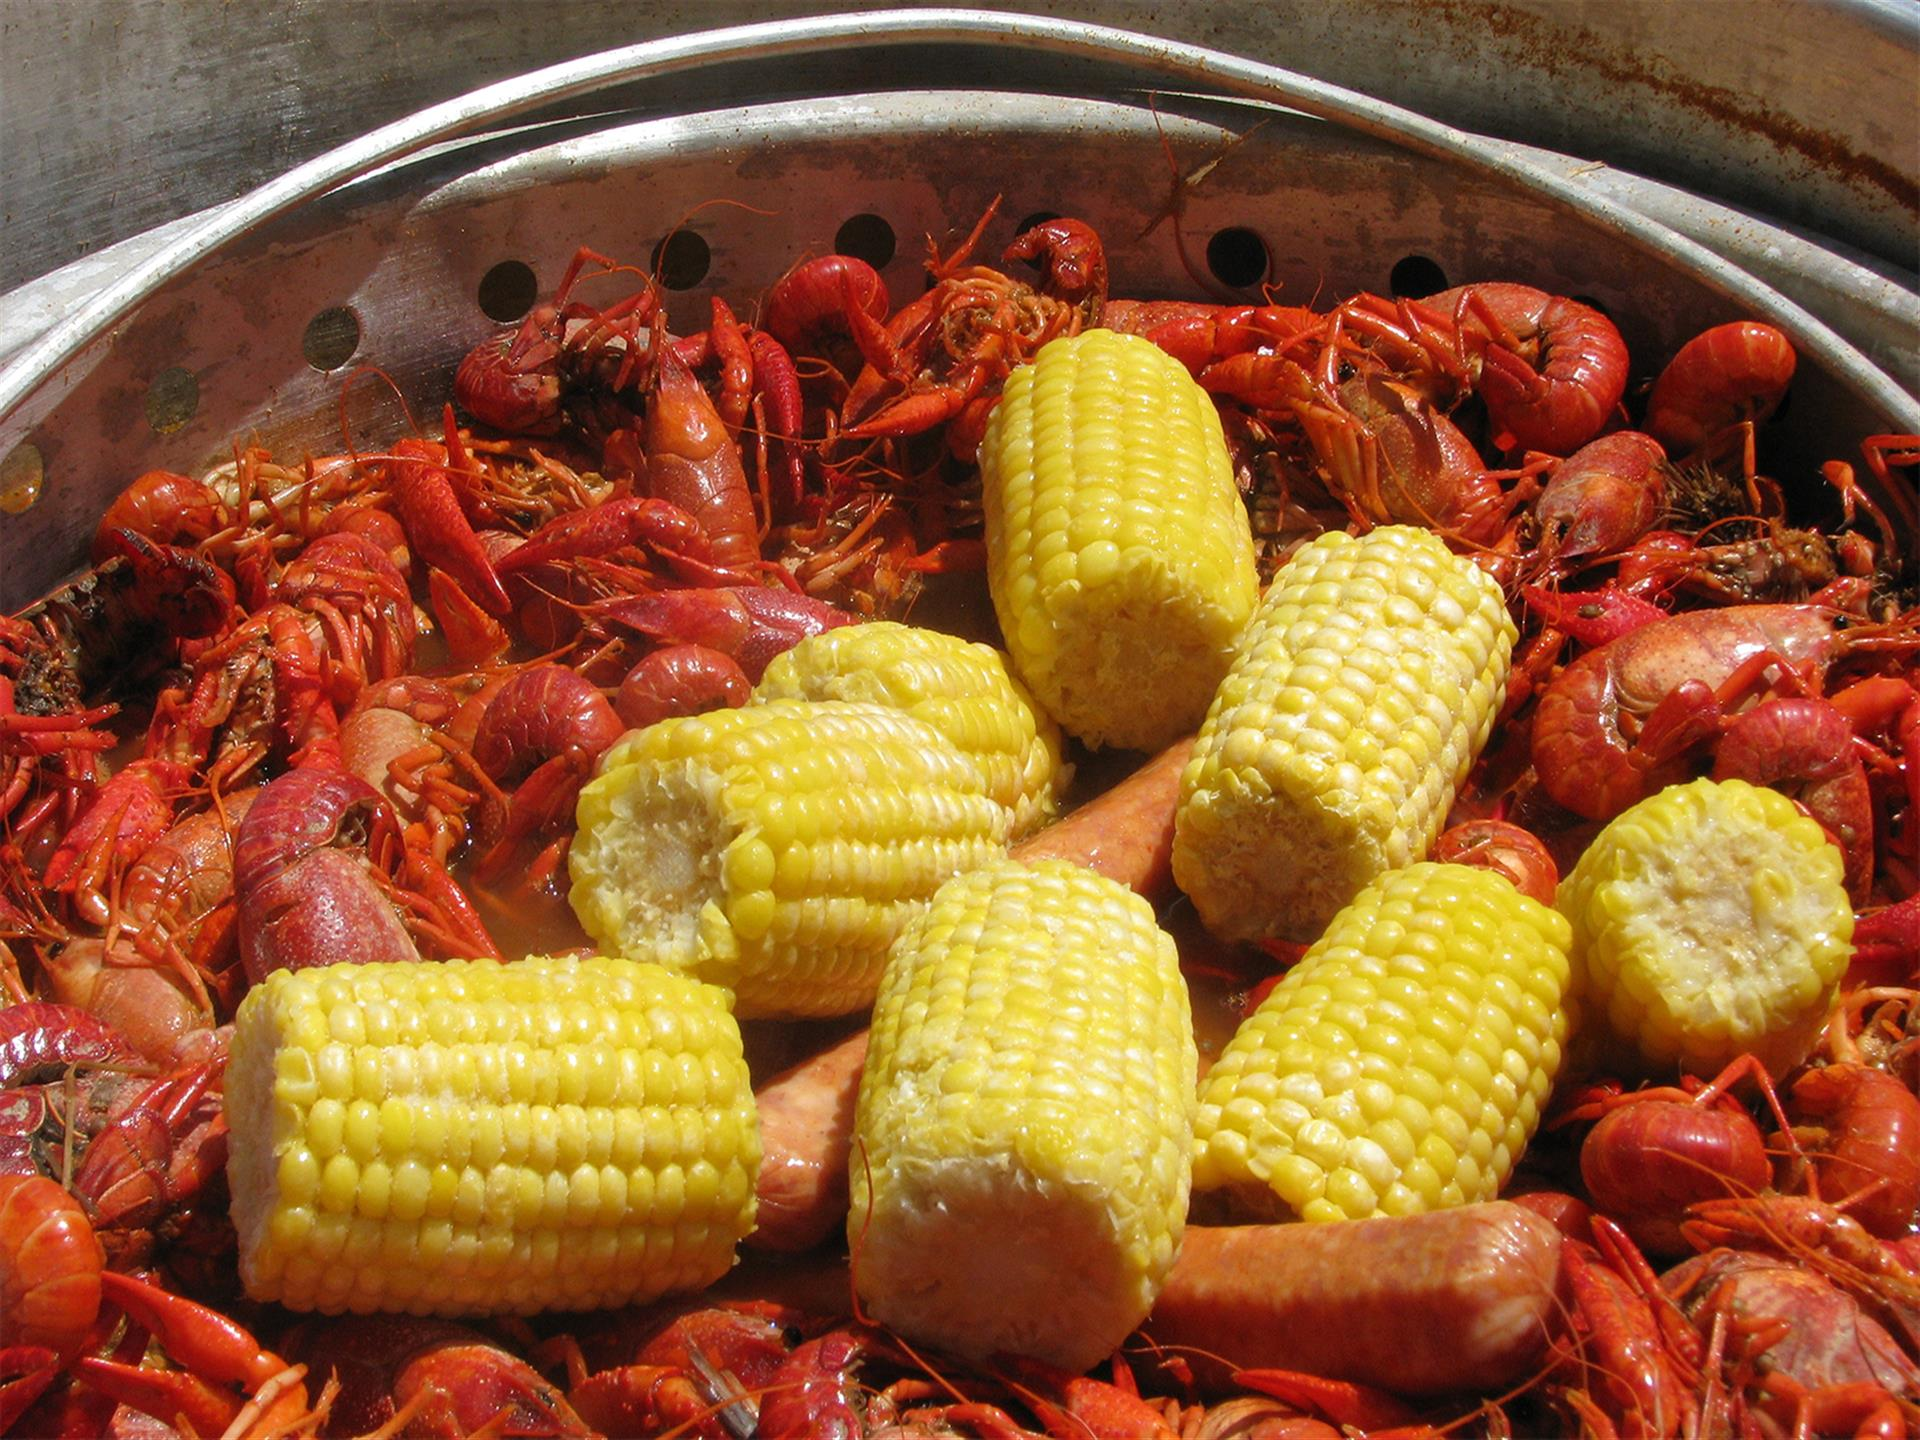 Craw fish with Corn Cobbs